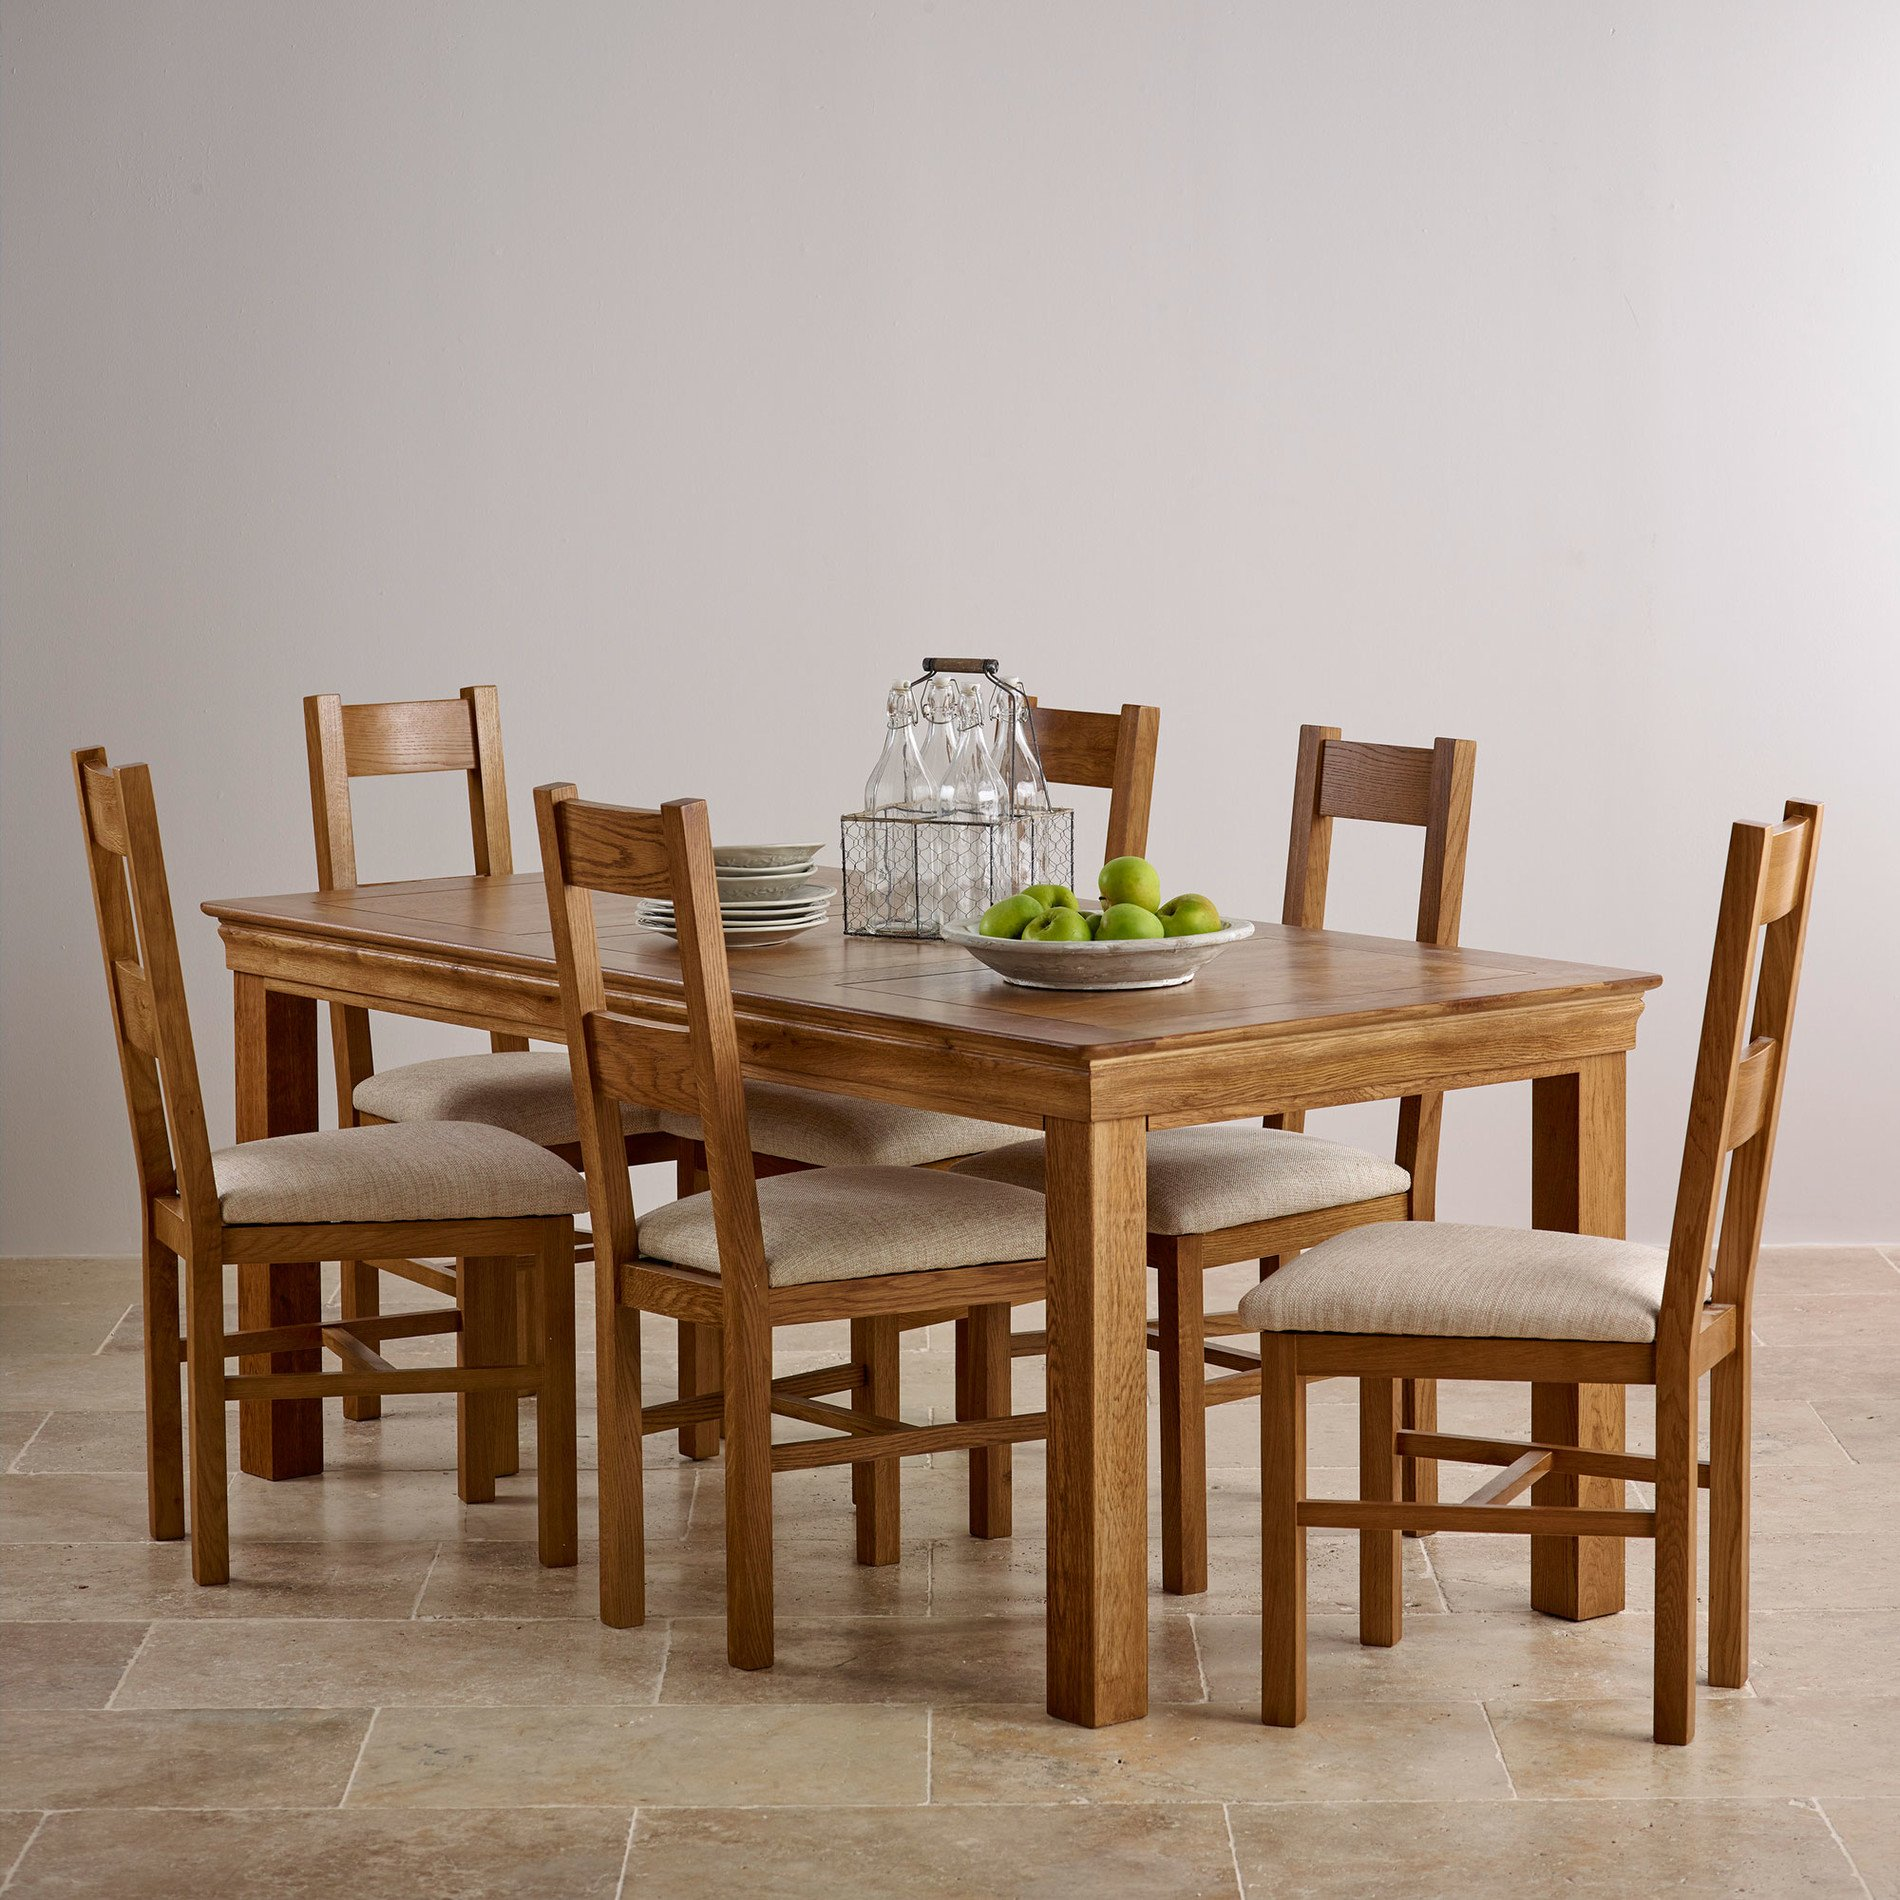 French Farmhouse Rustic Solid Oak Dining Set 6ft Table